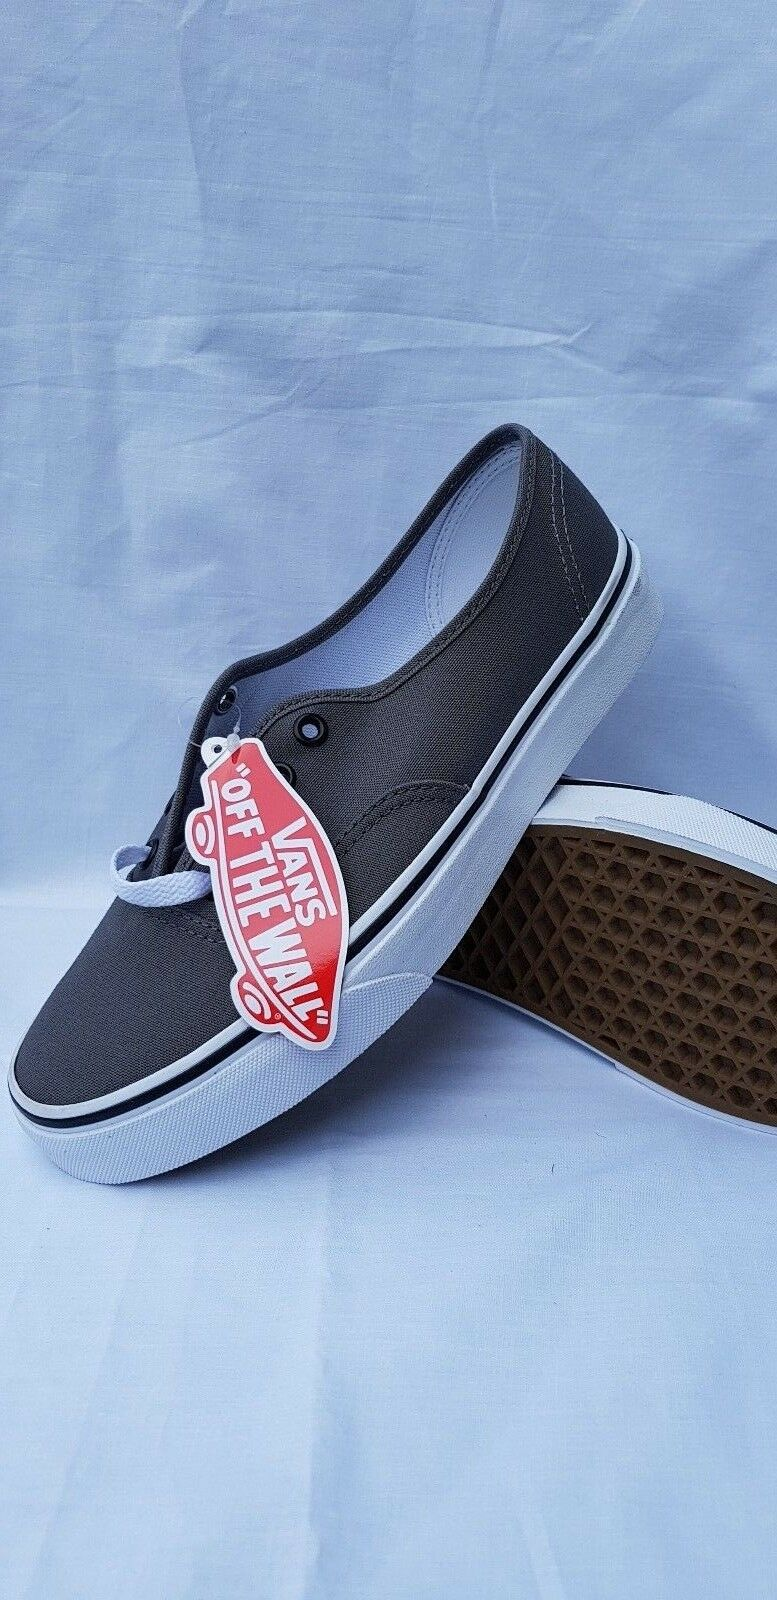 Vans Old Skool Off The Wall Toile Patineuse Marine Baskets Tennis Gris Blanc Marine Patineuse c3e8f2